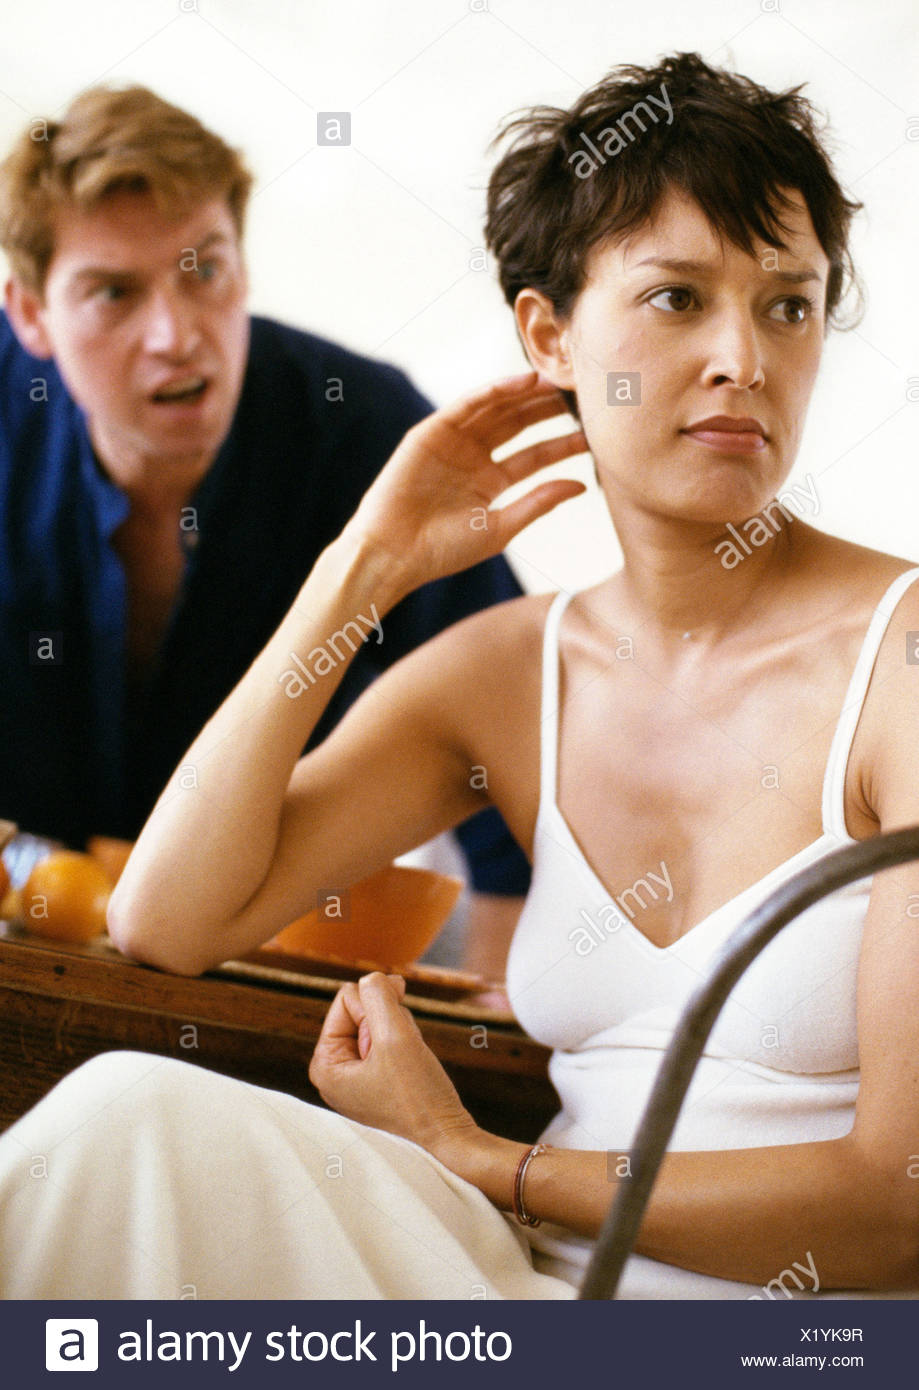 Couple arguing over breakfast, man yelling while woman looks away in anger Stock Photo